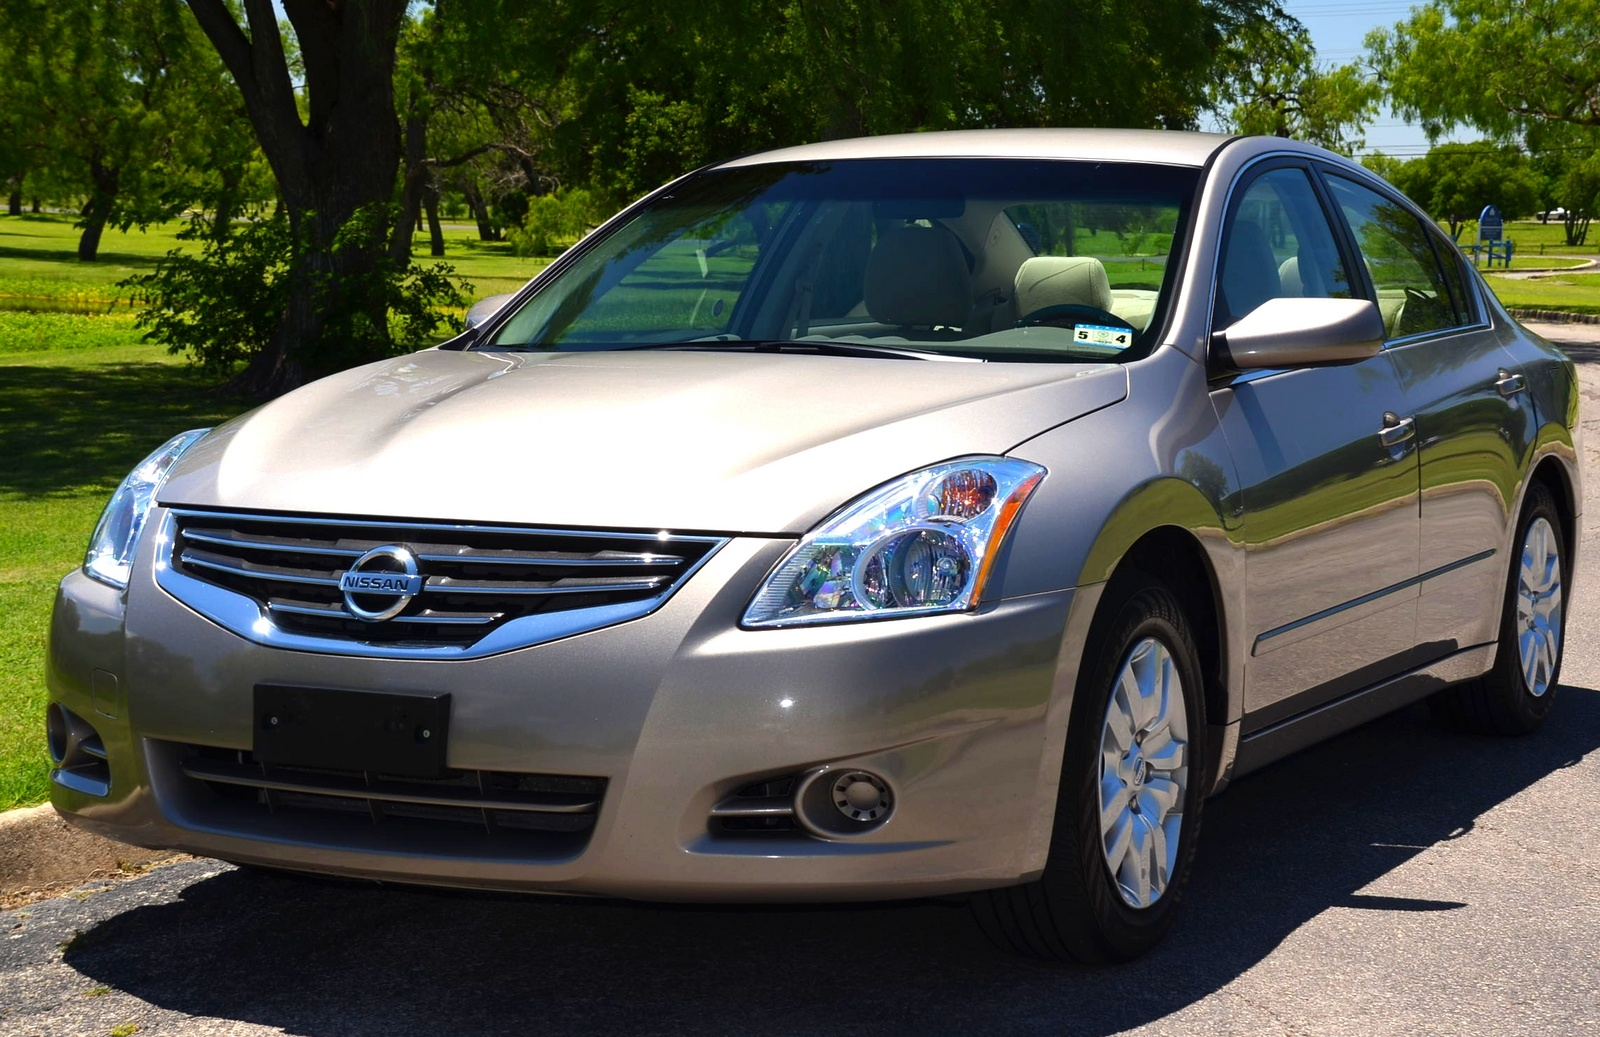 Nissan Altima S Nissan Altima Coupe U32 2007 09 Wallpapers 2048x1536 2009 Nissan Altima 2 5 S